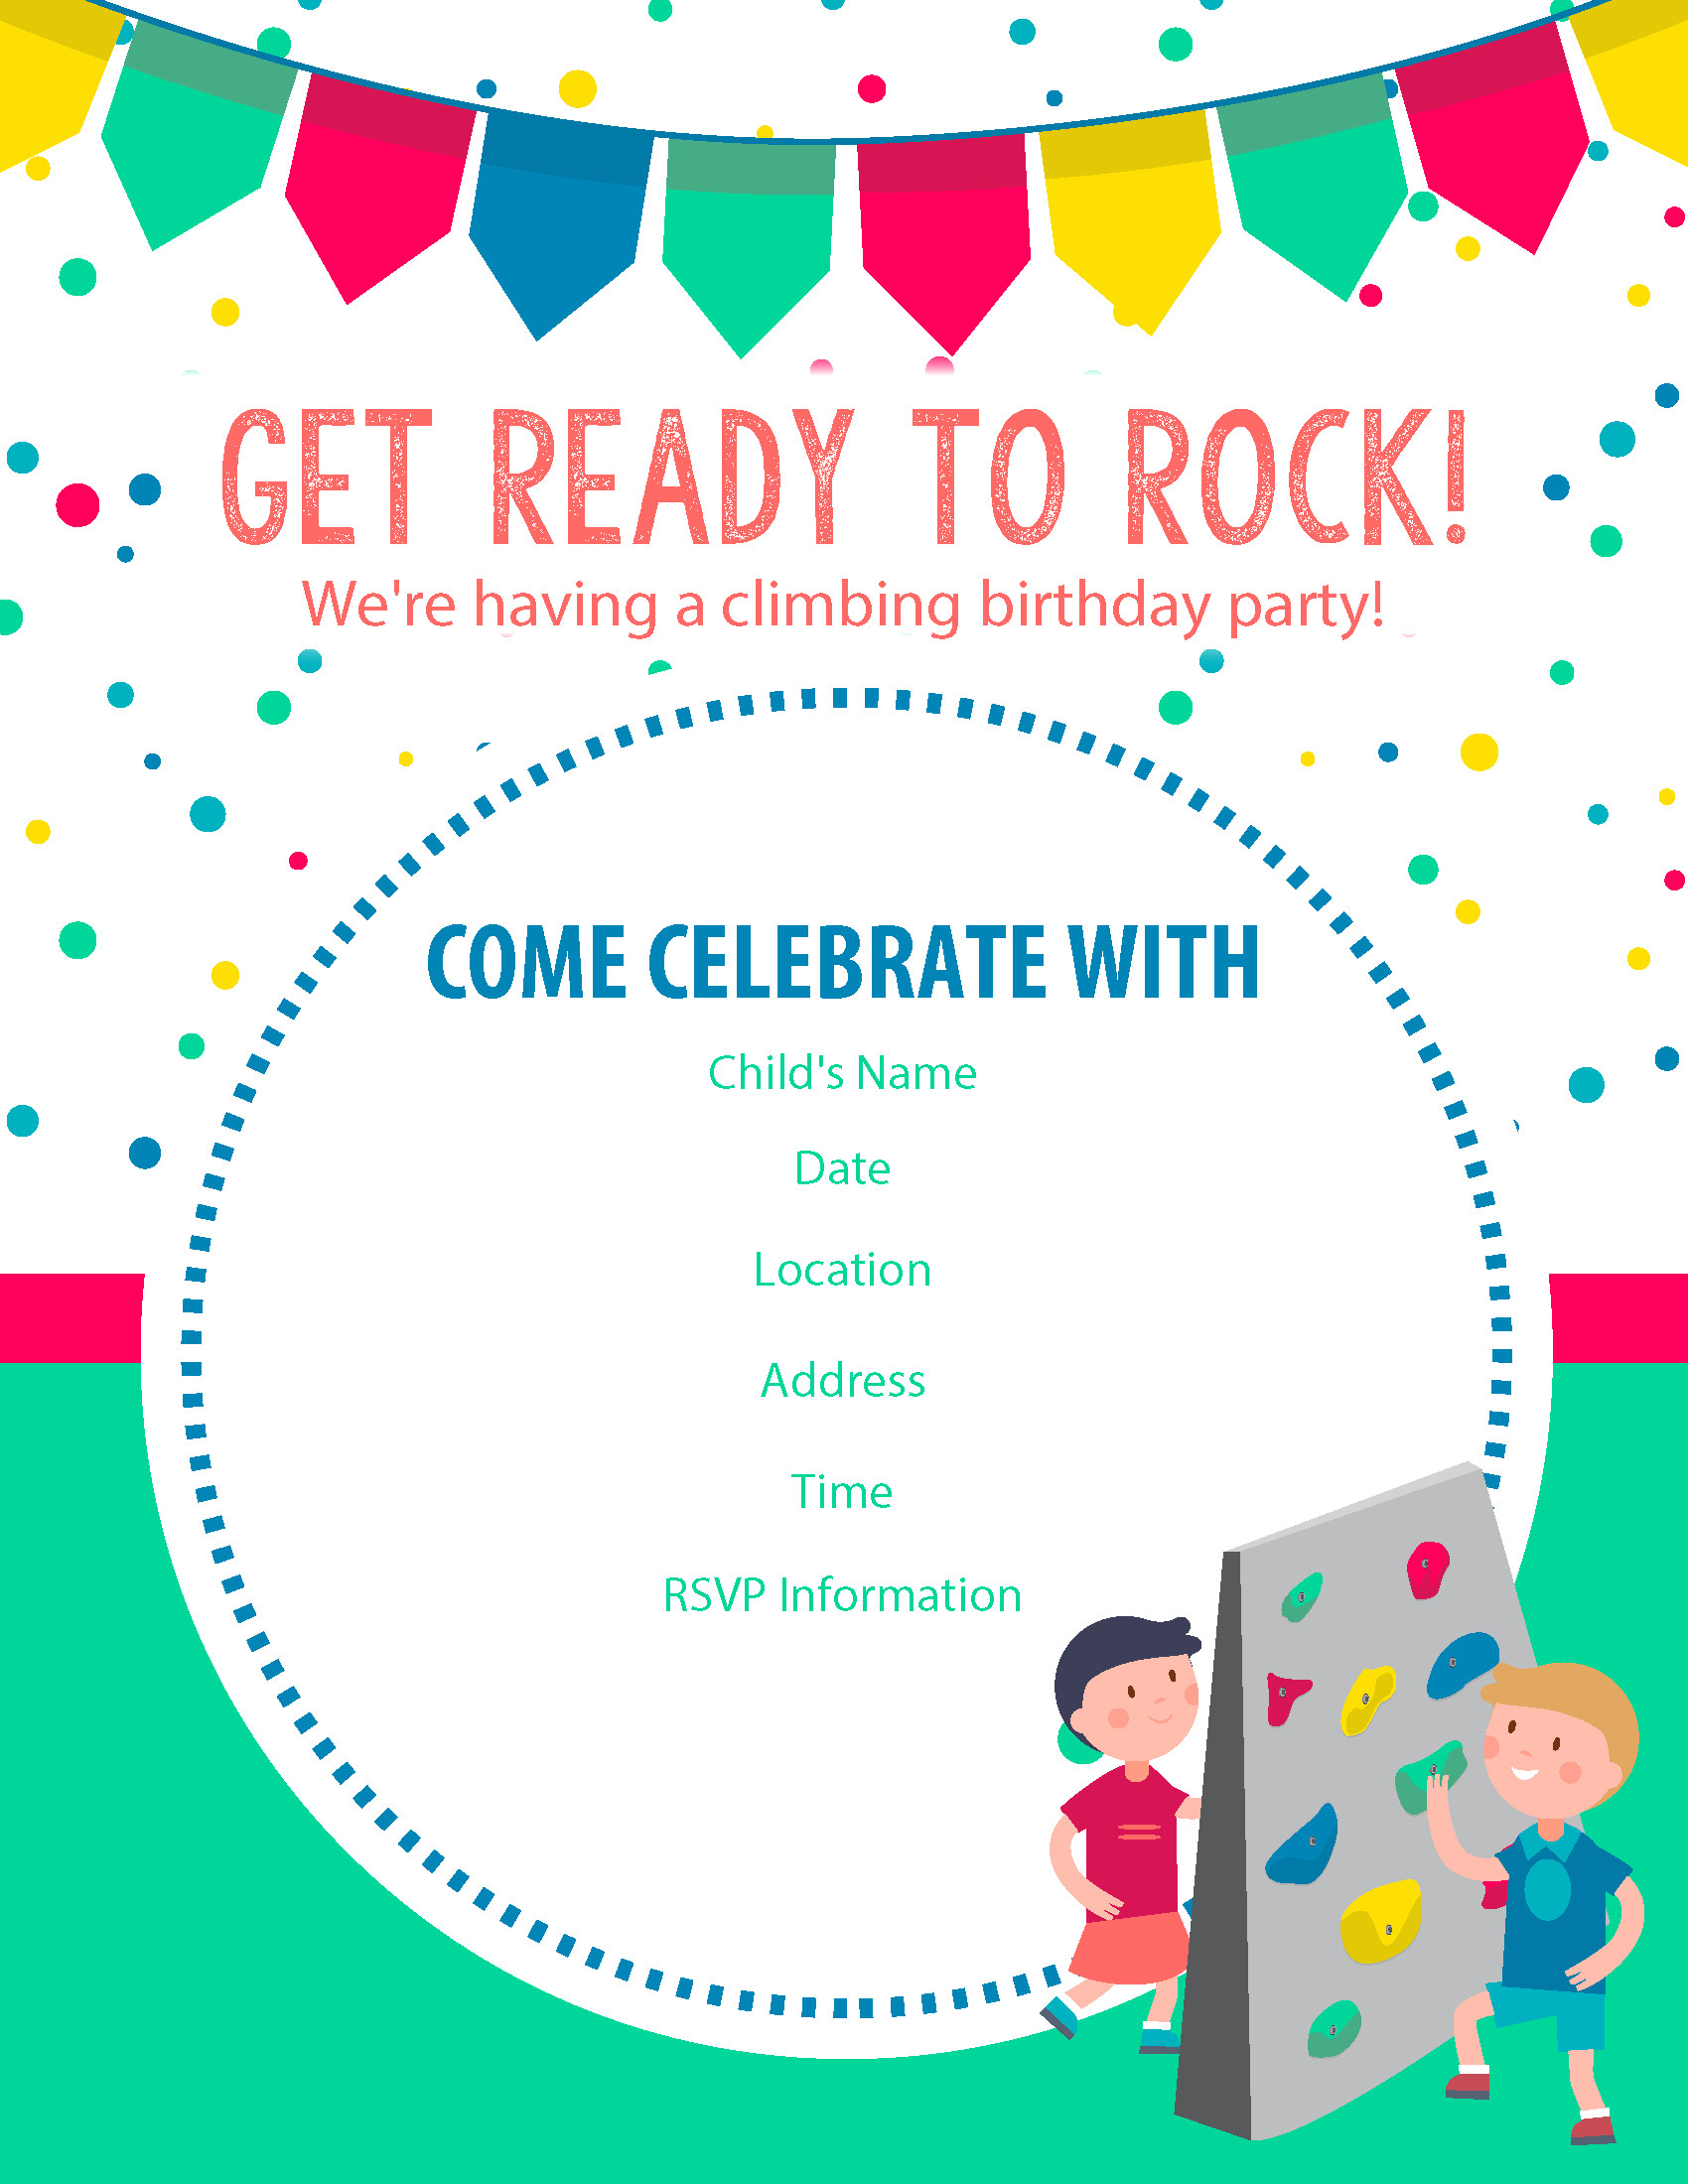 Best ideas about Birthday Party Templates . Save or Pin Happy Birthday Free Rock Climbing Birthday Party Invitations Now.